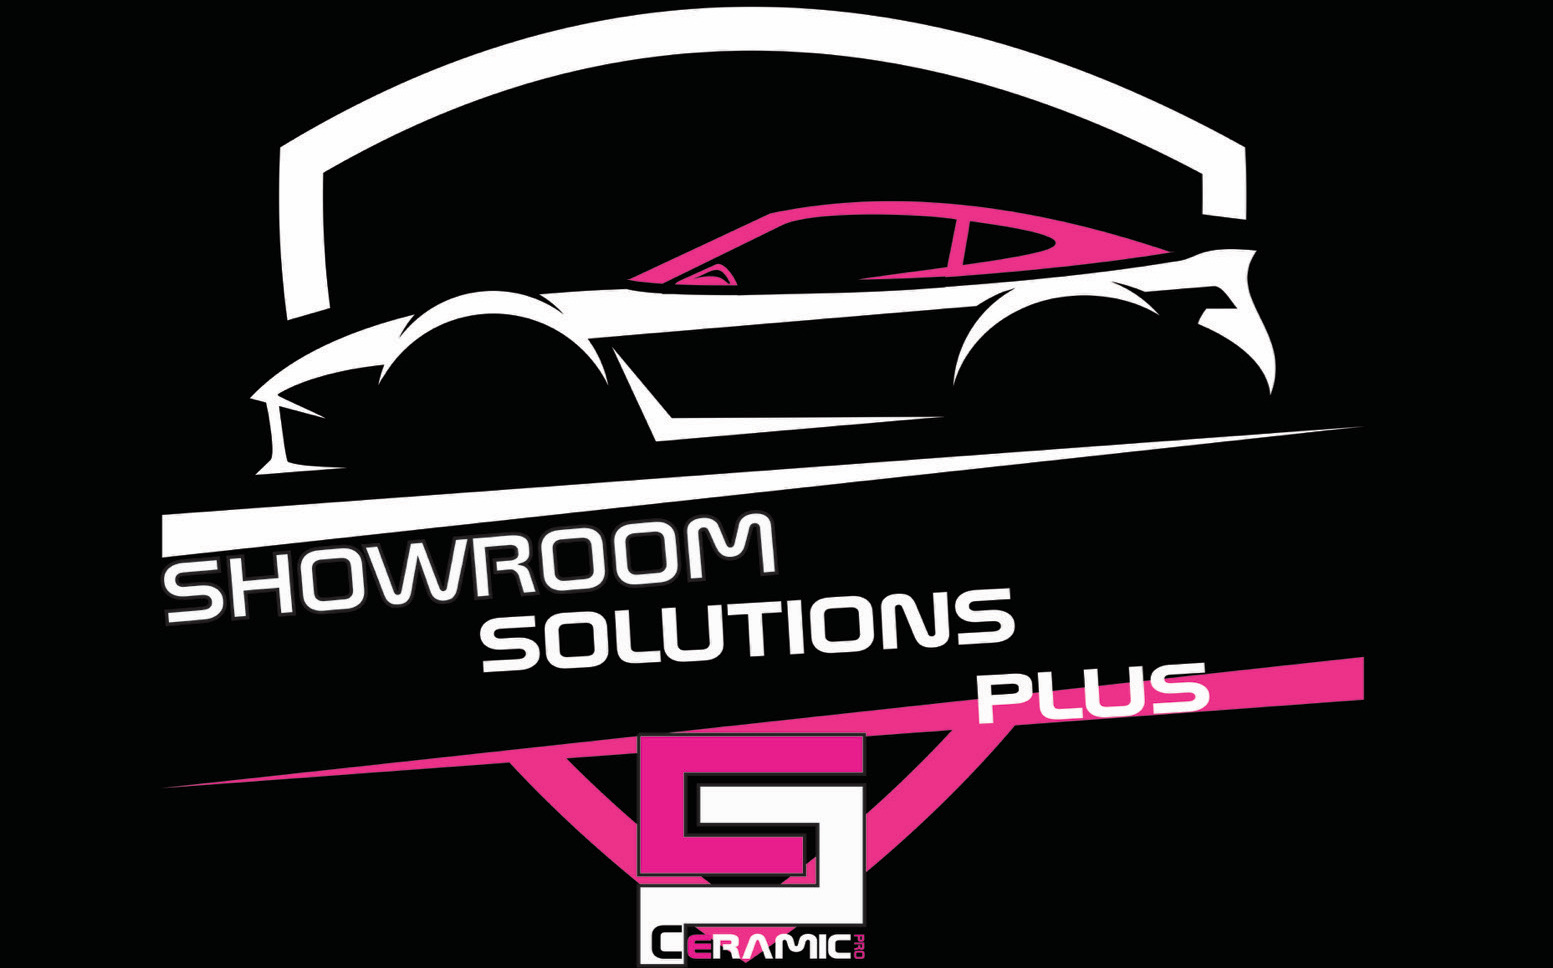 Showroom Solutions Plus